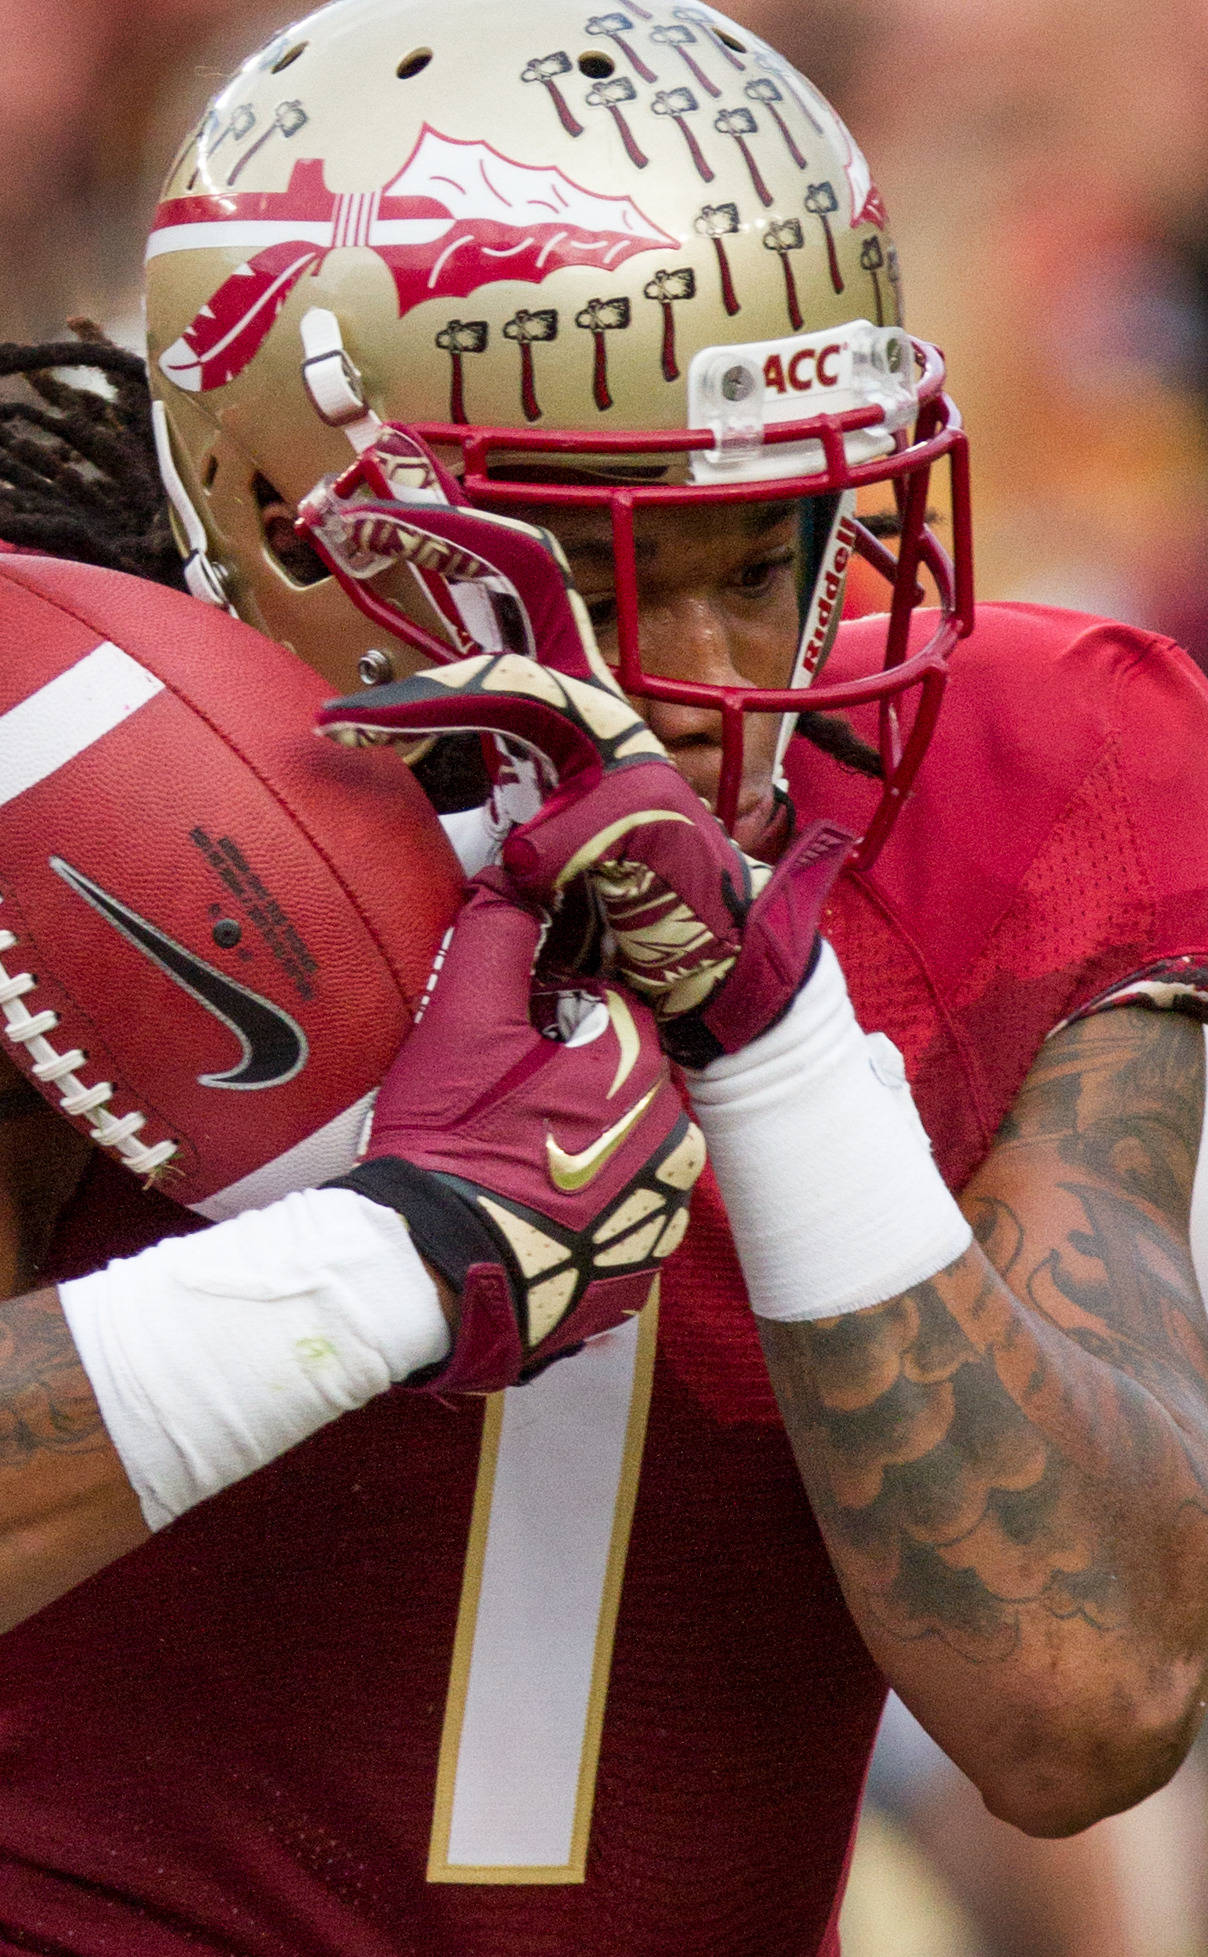 Kelvin Benjamin (1) holds on to the ball during FSU Football's 59-3 win over Syracuse on Saturday, November 16, 2013 in Tallahassee, Fla. Photo by Mike Schwarz.